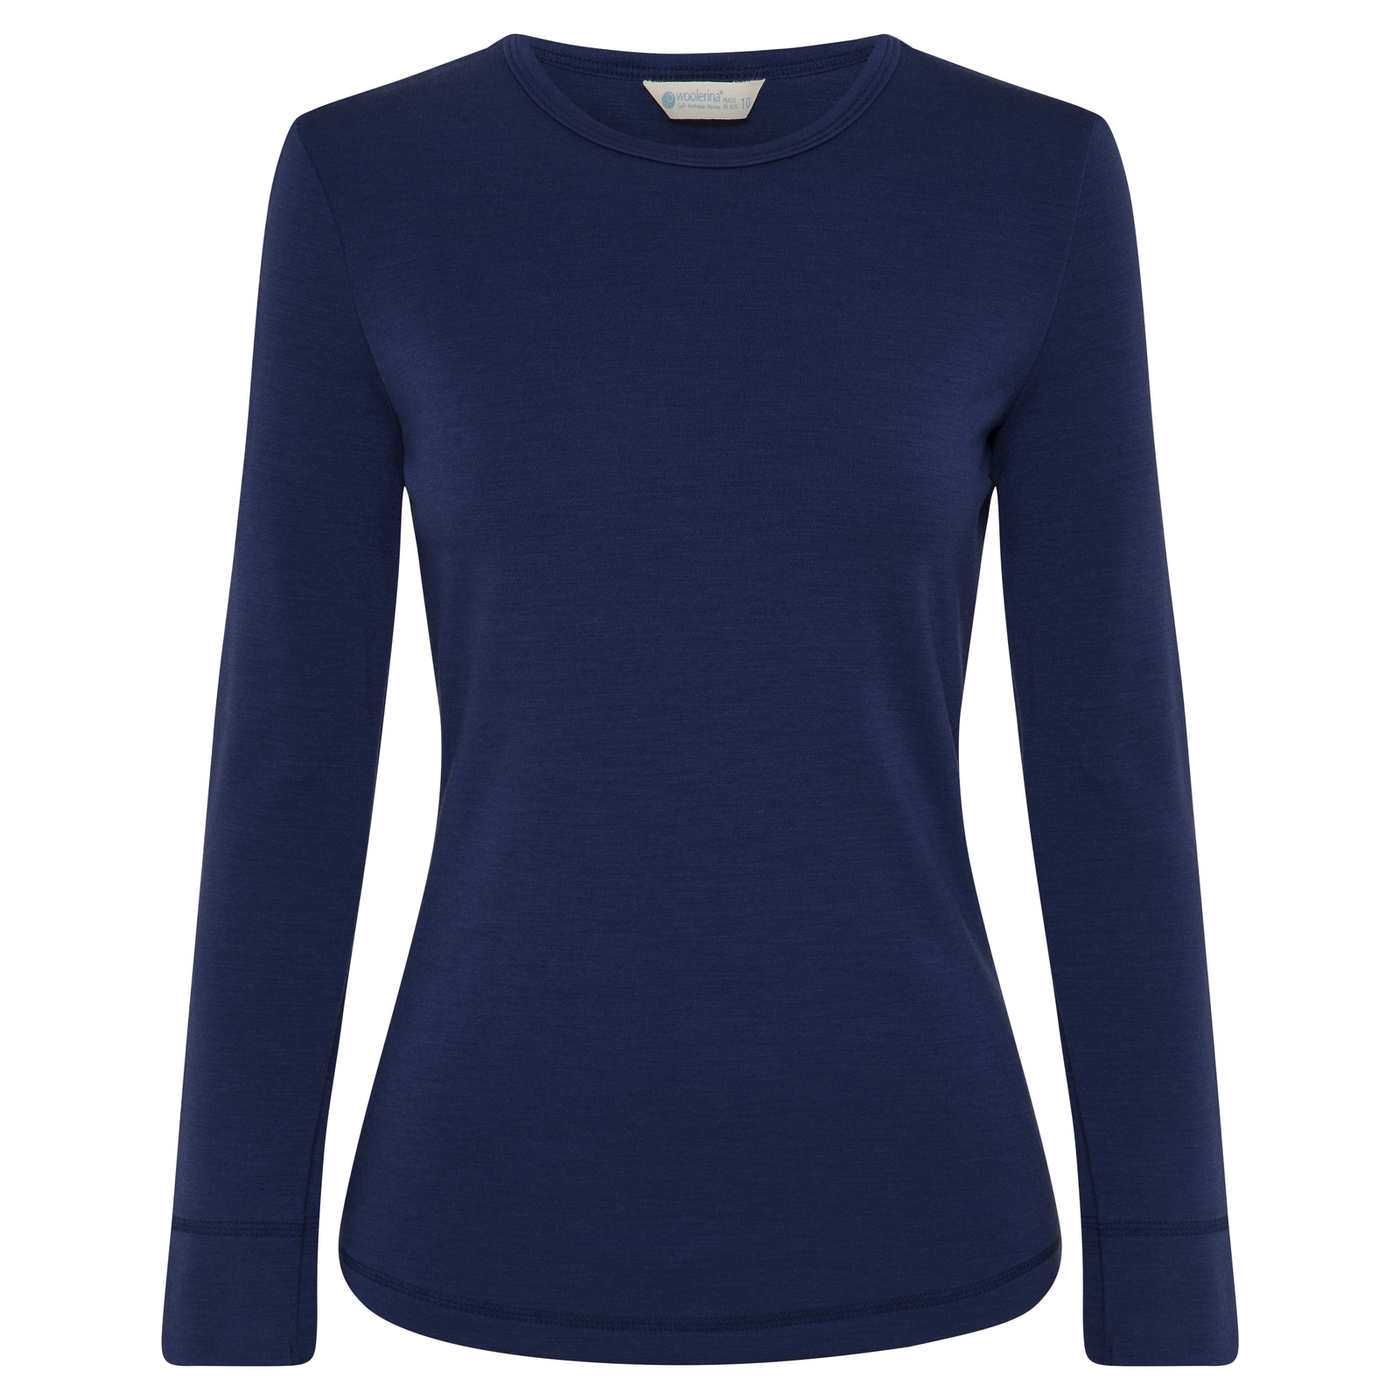 Womens Long Sleeve Crew Neck AW20